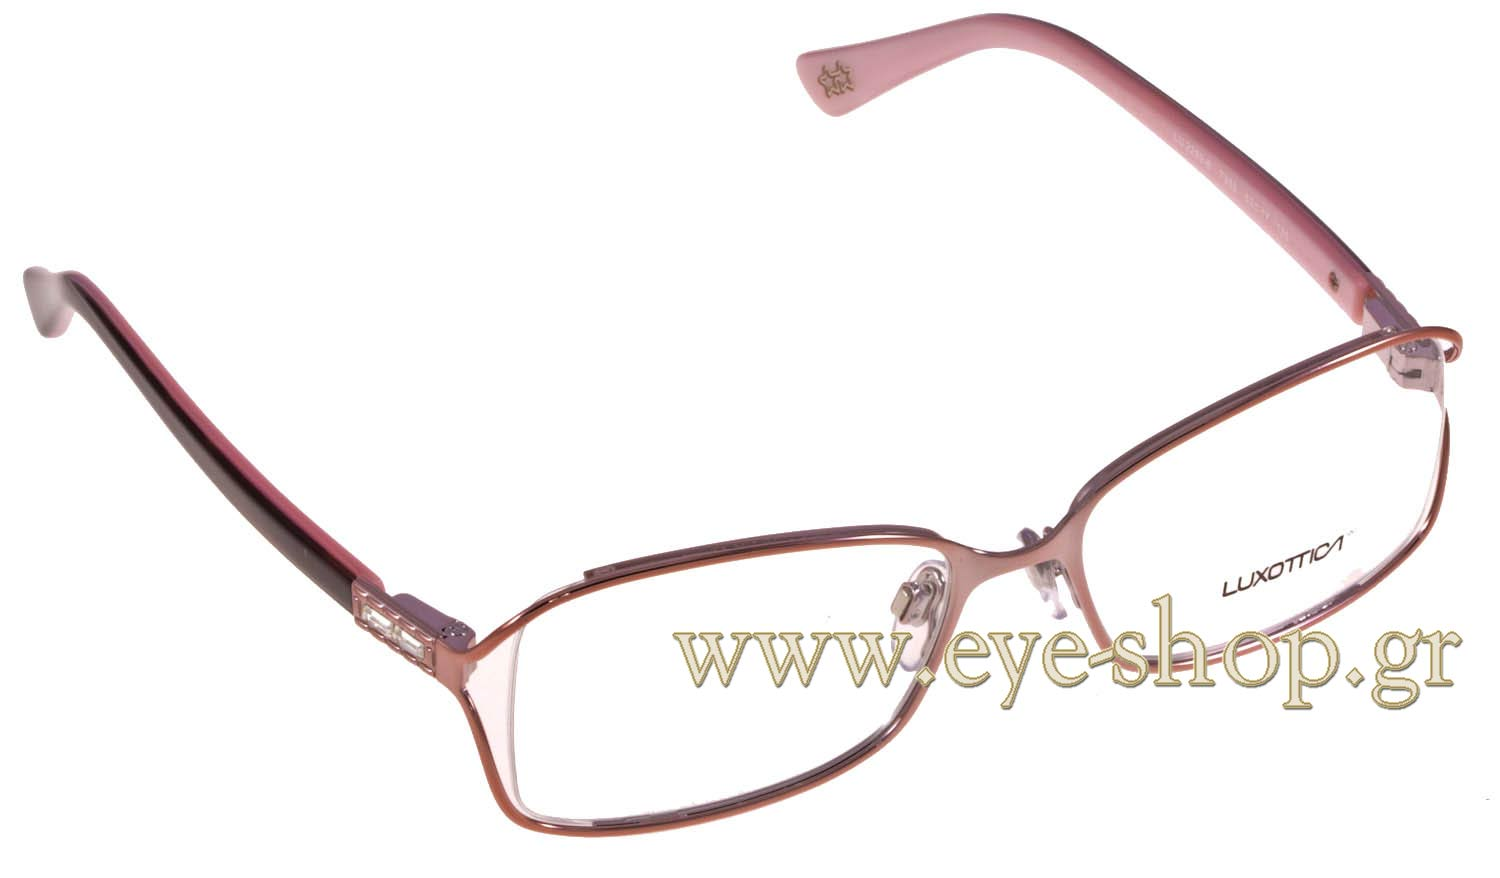 Eyeglass Frames Not Made By Luxottica : EYEWEAR LUXOTTICA 2289B T359 53? Women 2017 ver1.